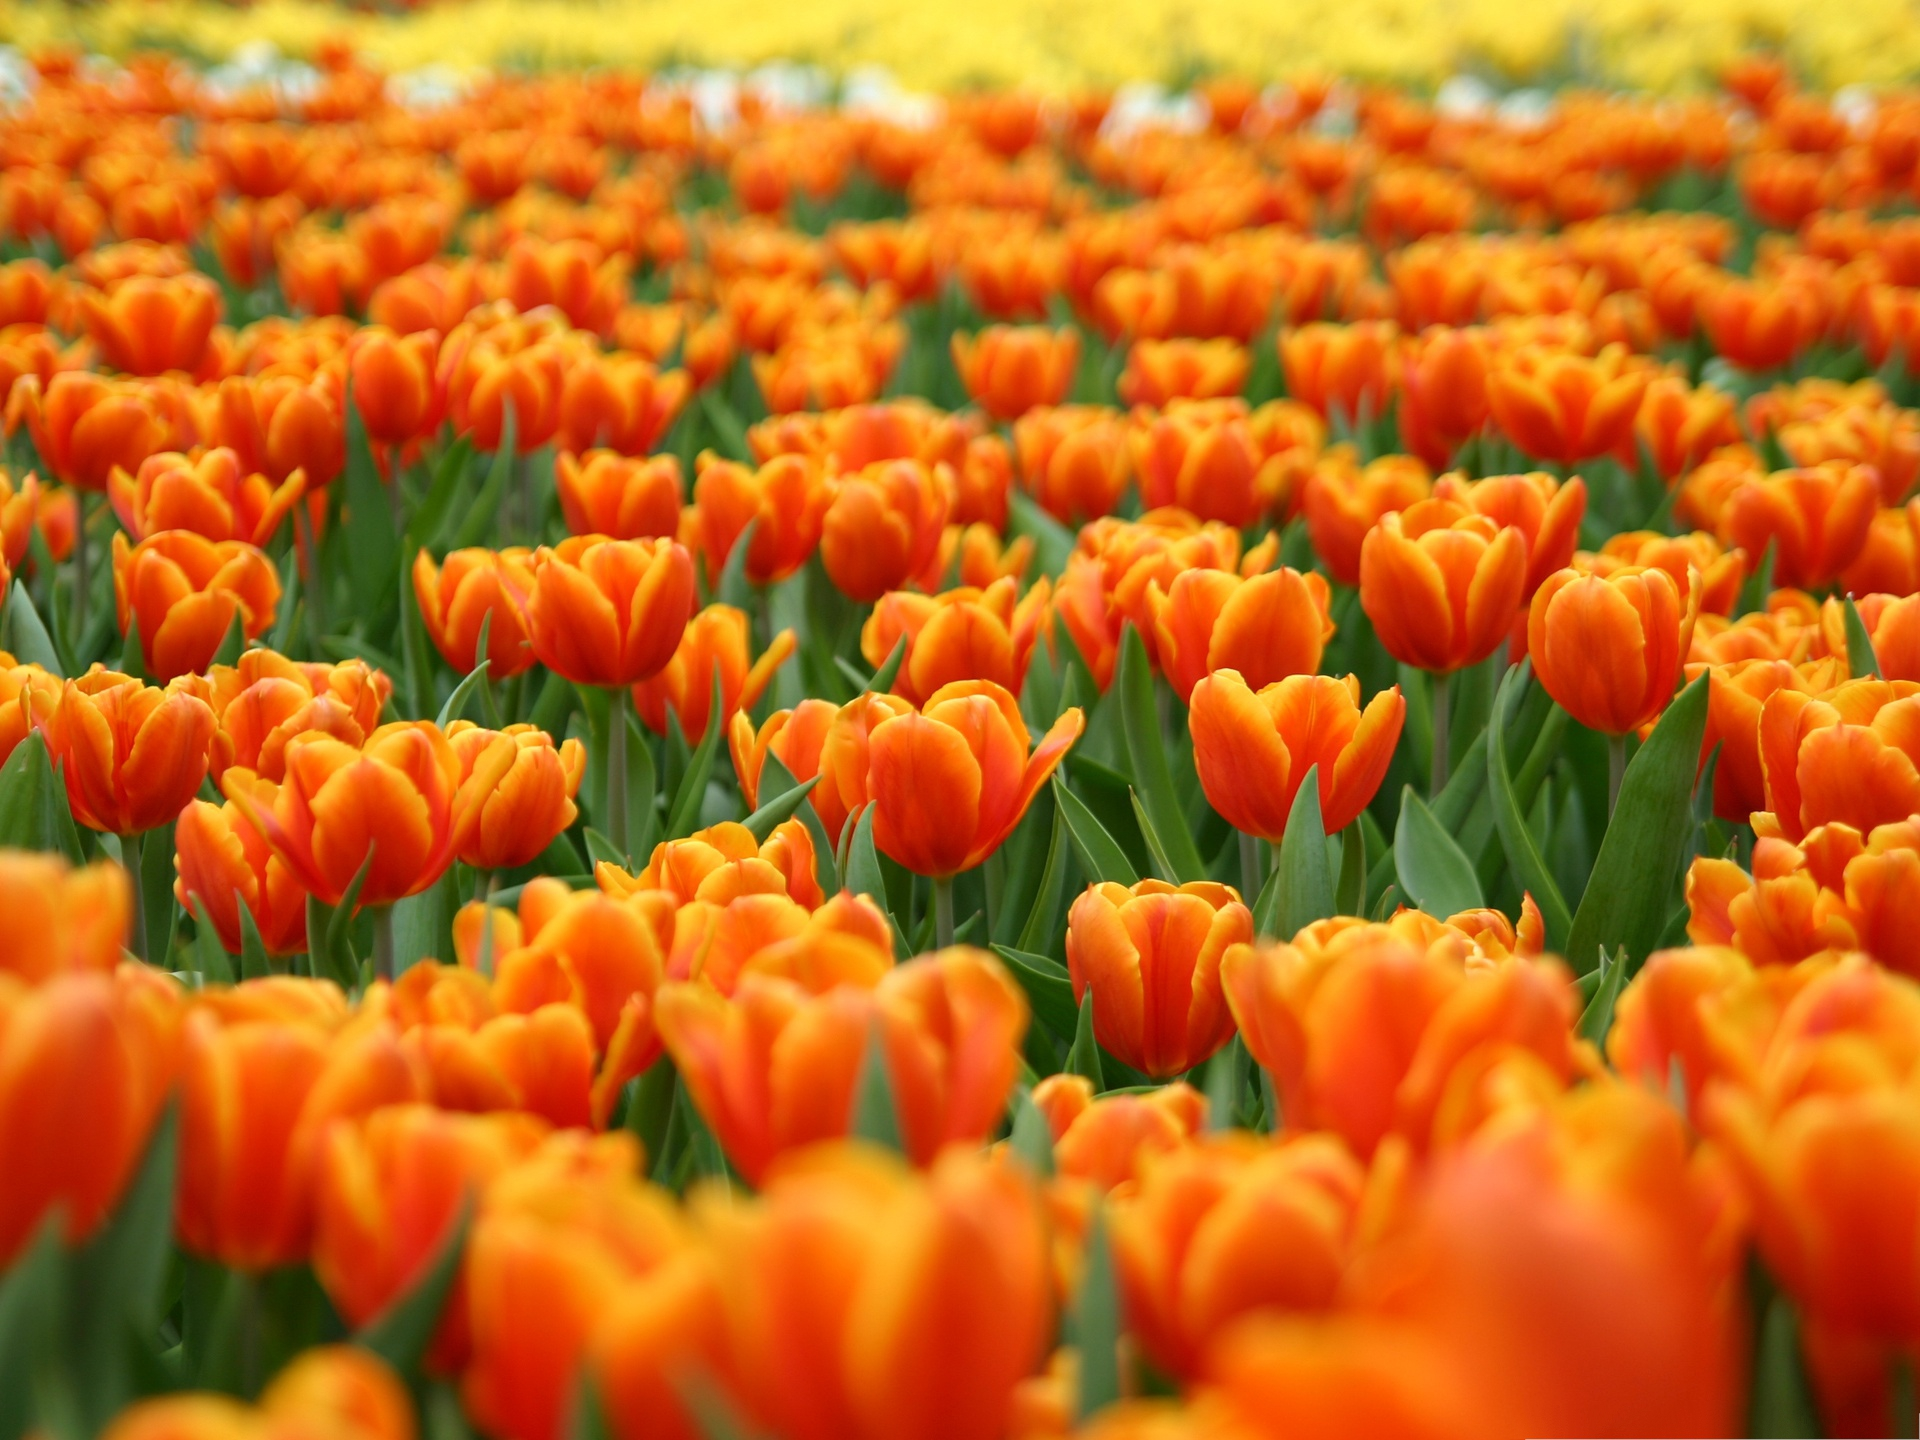 click to free download the wallpaper--Orange Tulips Image, Beautiful Flower Field, Great Place to Stay 1920X1440 free wallpaper download